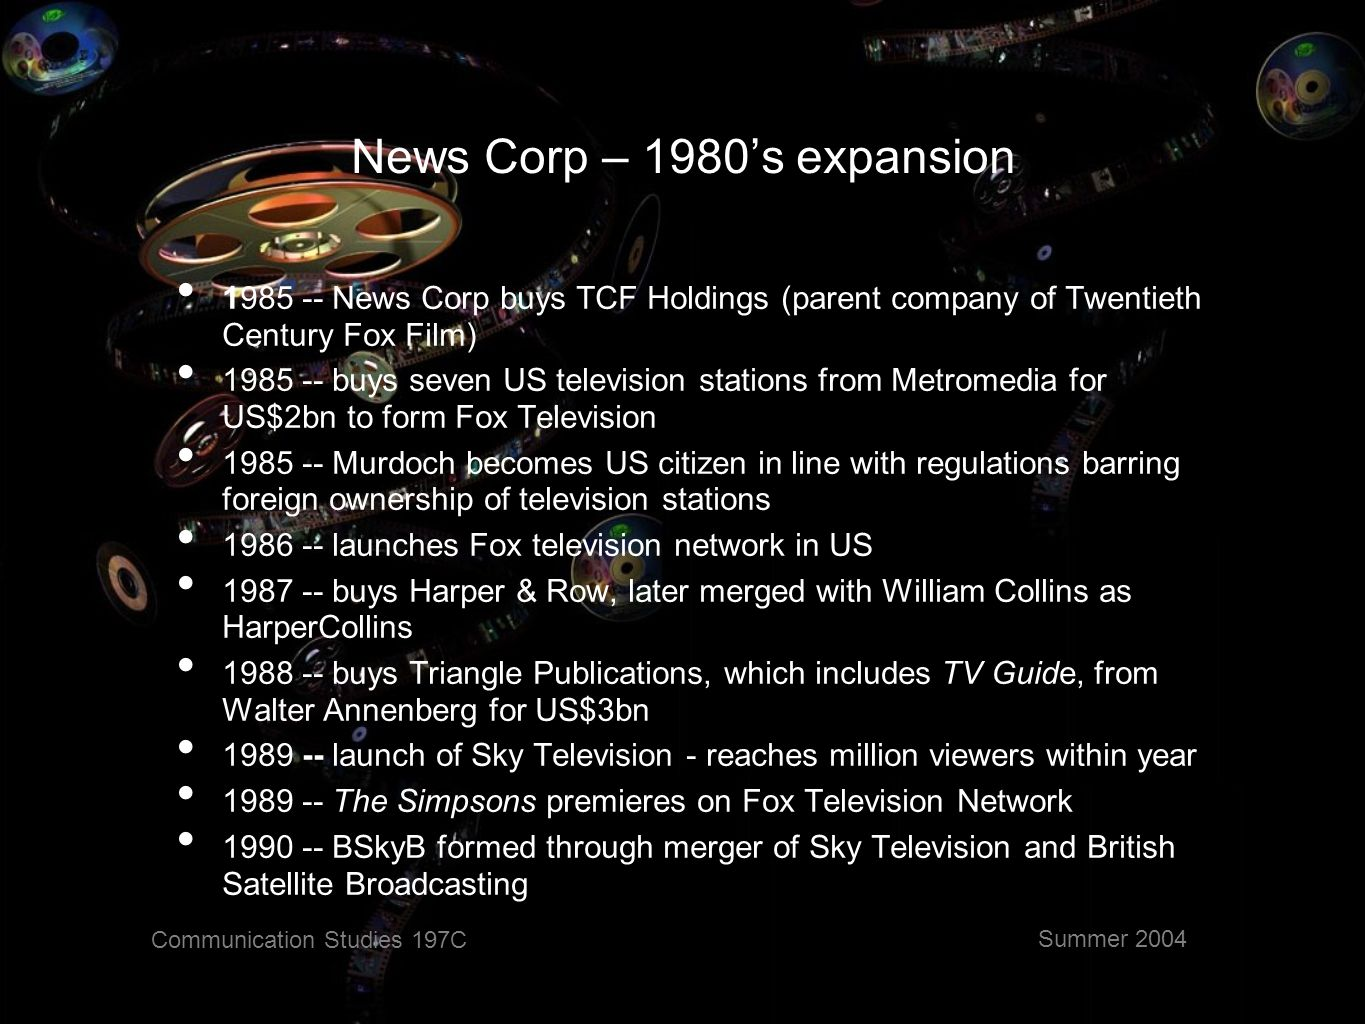 Communication Studies 197C Summer 2004 News Corp – Regrouping 1990 -- News Corp nearly goes bankrupt with over US$6bn in debt on three continents 1991 -- sells most US magazines - including New York, Seventeen, Soap Opera Digest, Soap Opera Weekly, Seventeen, Automobile, New Woman, Premiere and Daily Racing Form - to Primedia 1992 -- family s stake in News reduced from 43% to 35% 1993 -- pays US$525m for 63.6% stake in Hong Kong-based satellite broadcaster Star TV